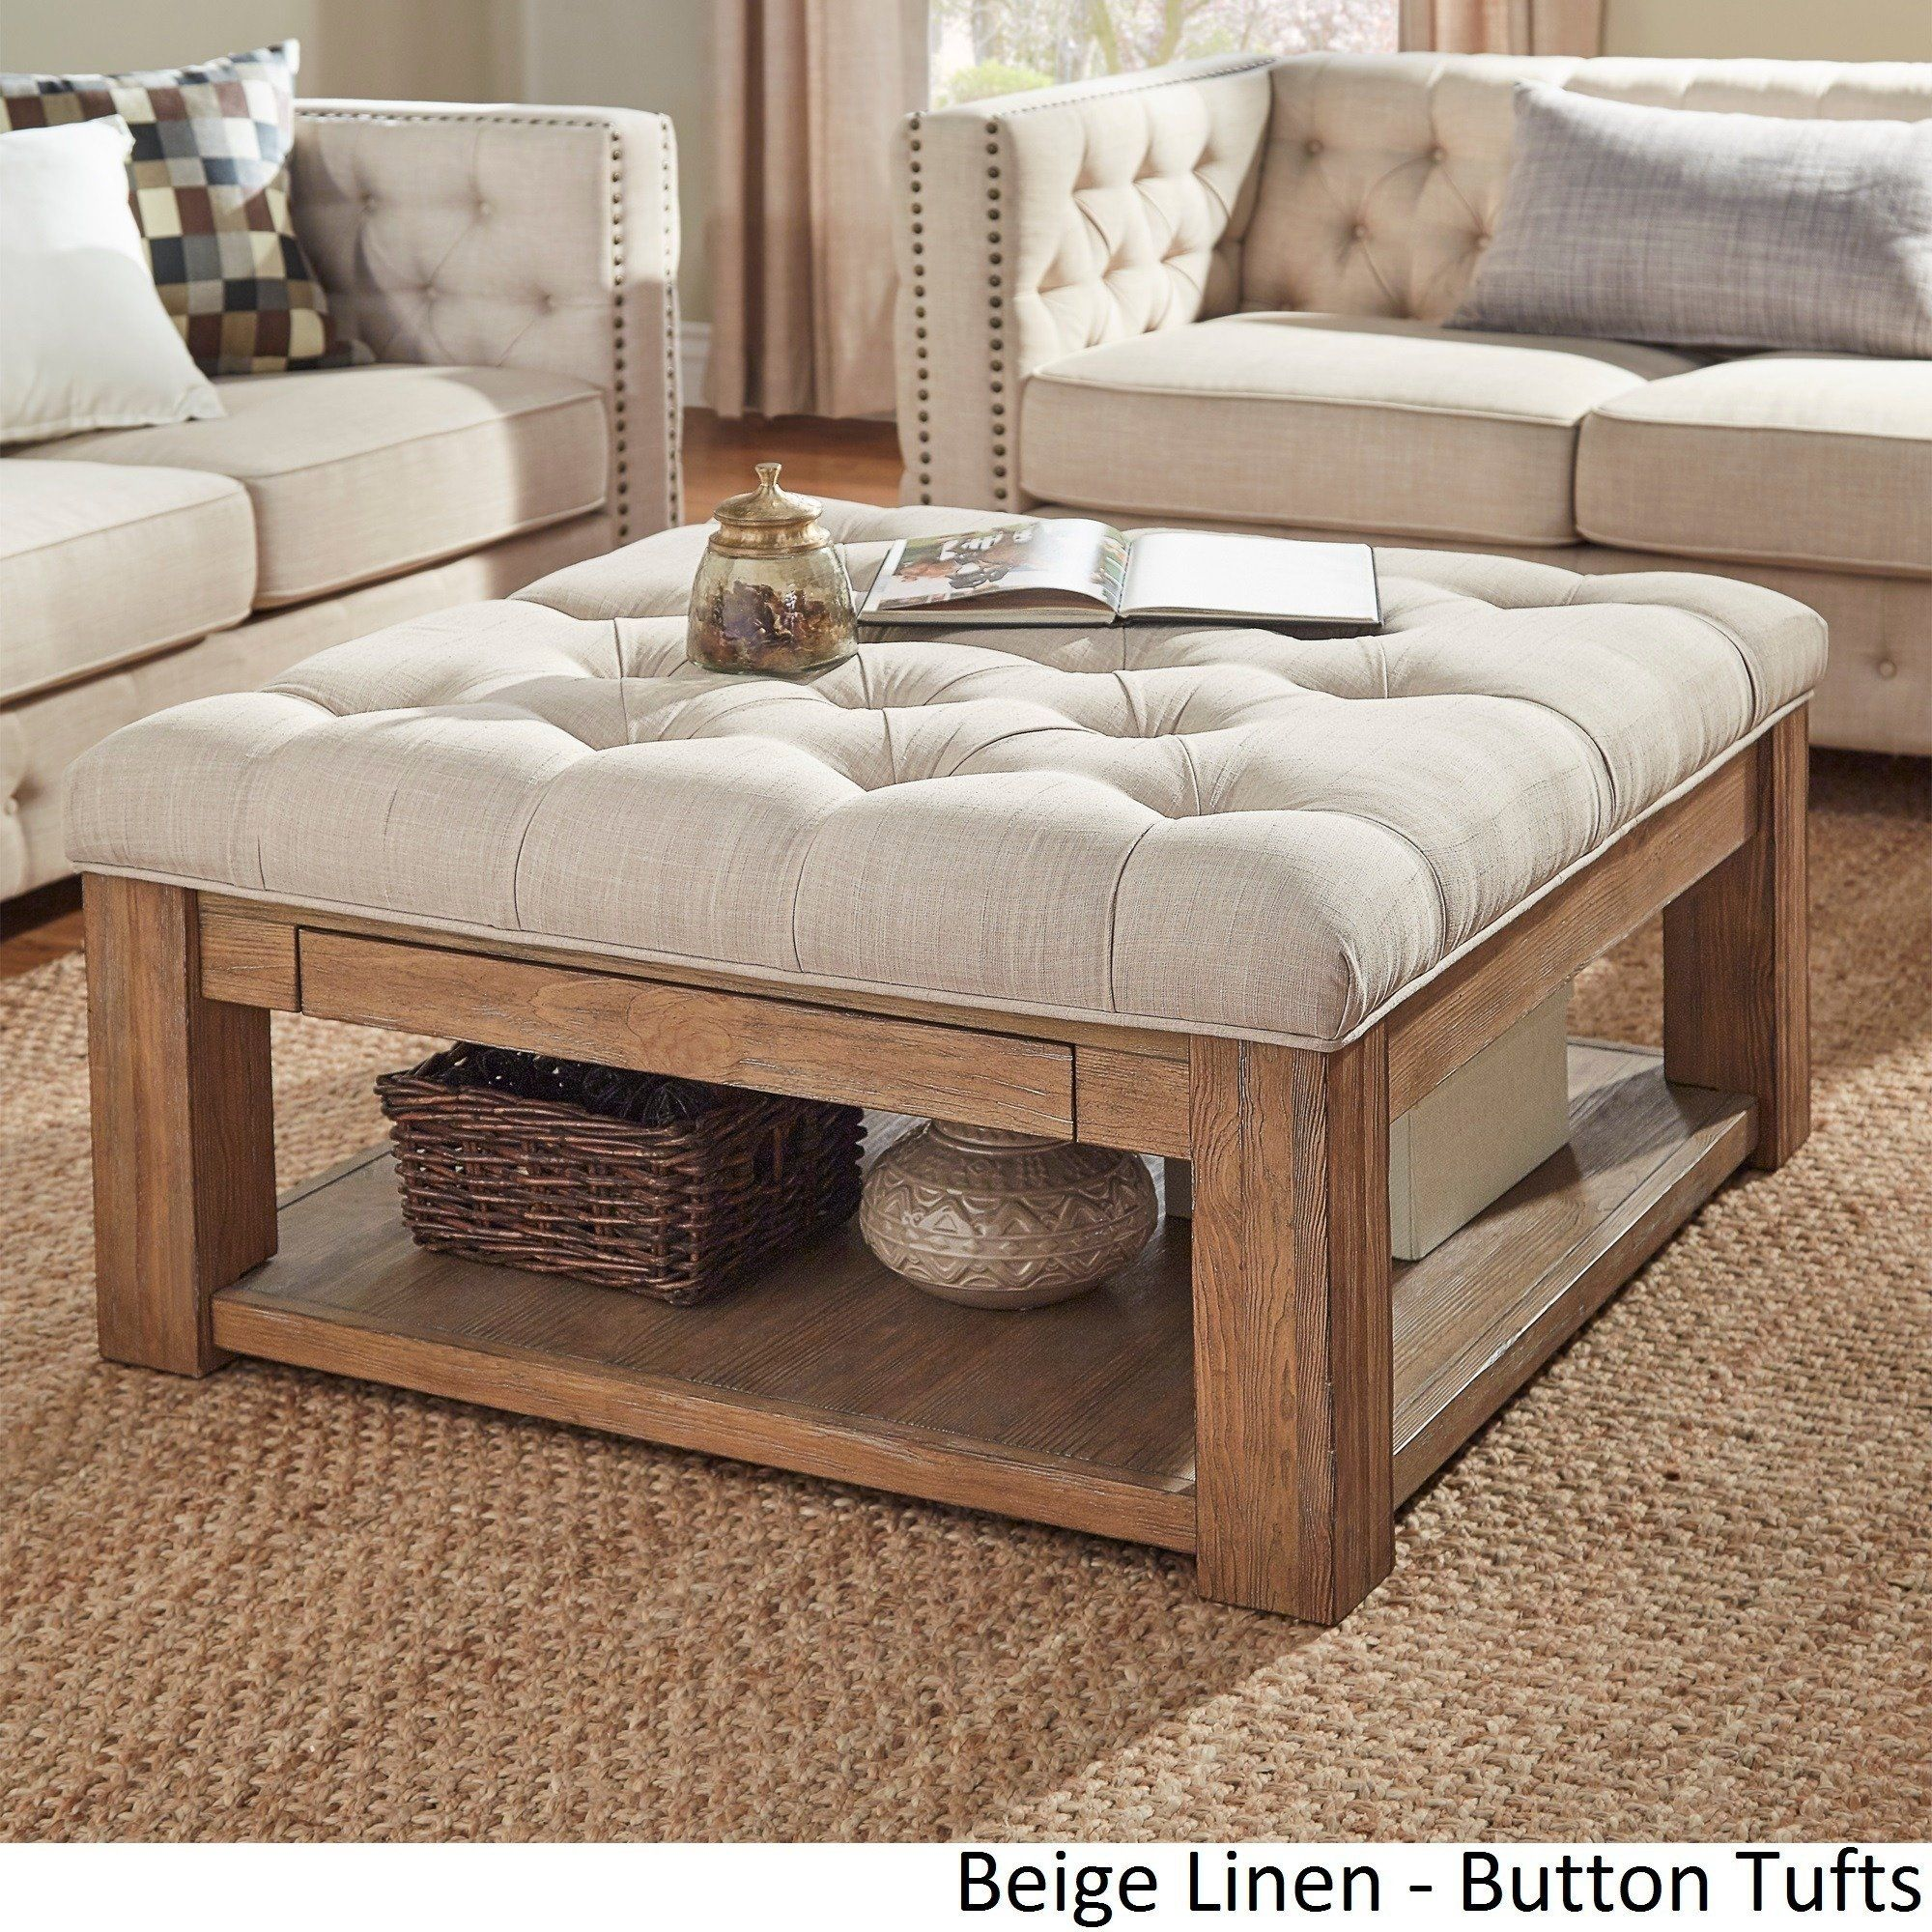 Lennon Pine Square Storage Ottoman Coffee Table by iNSPIRE